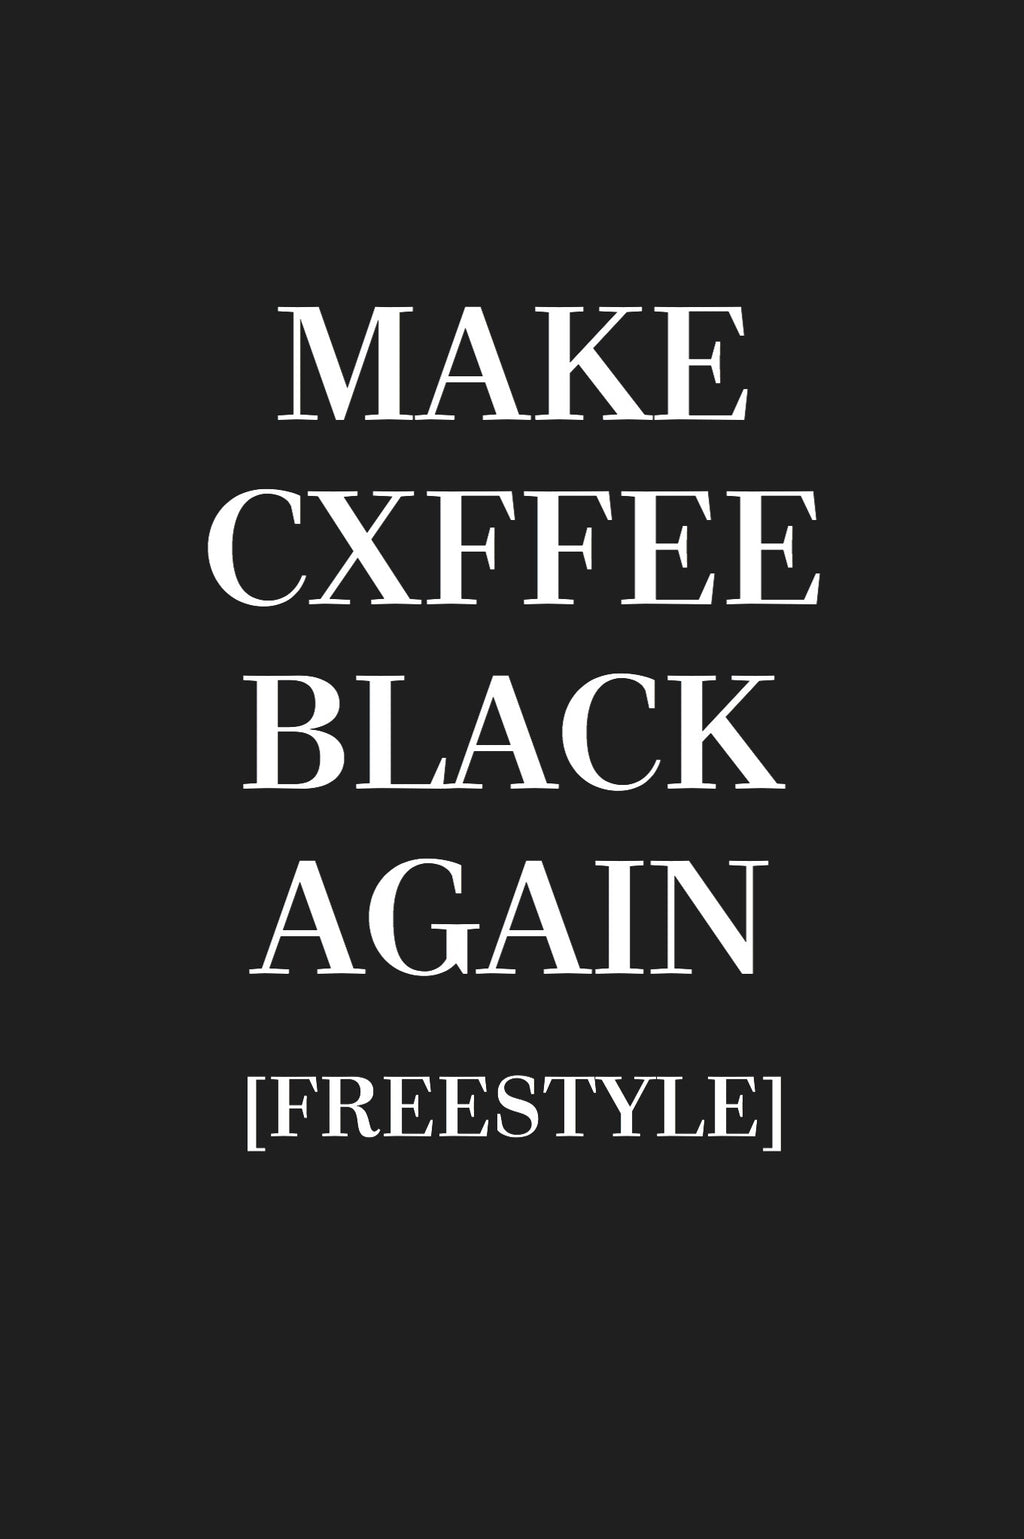 Make Cxffee Black Again Freestyle